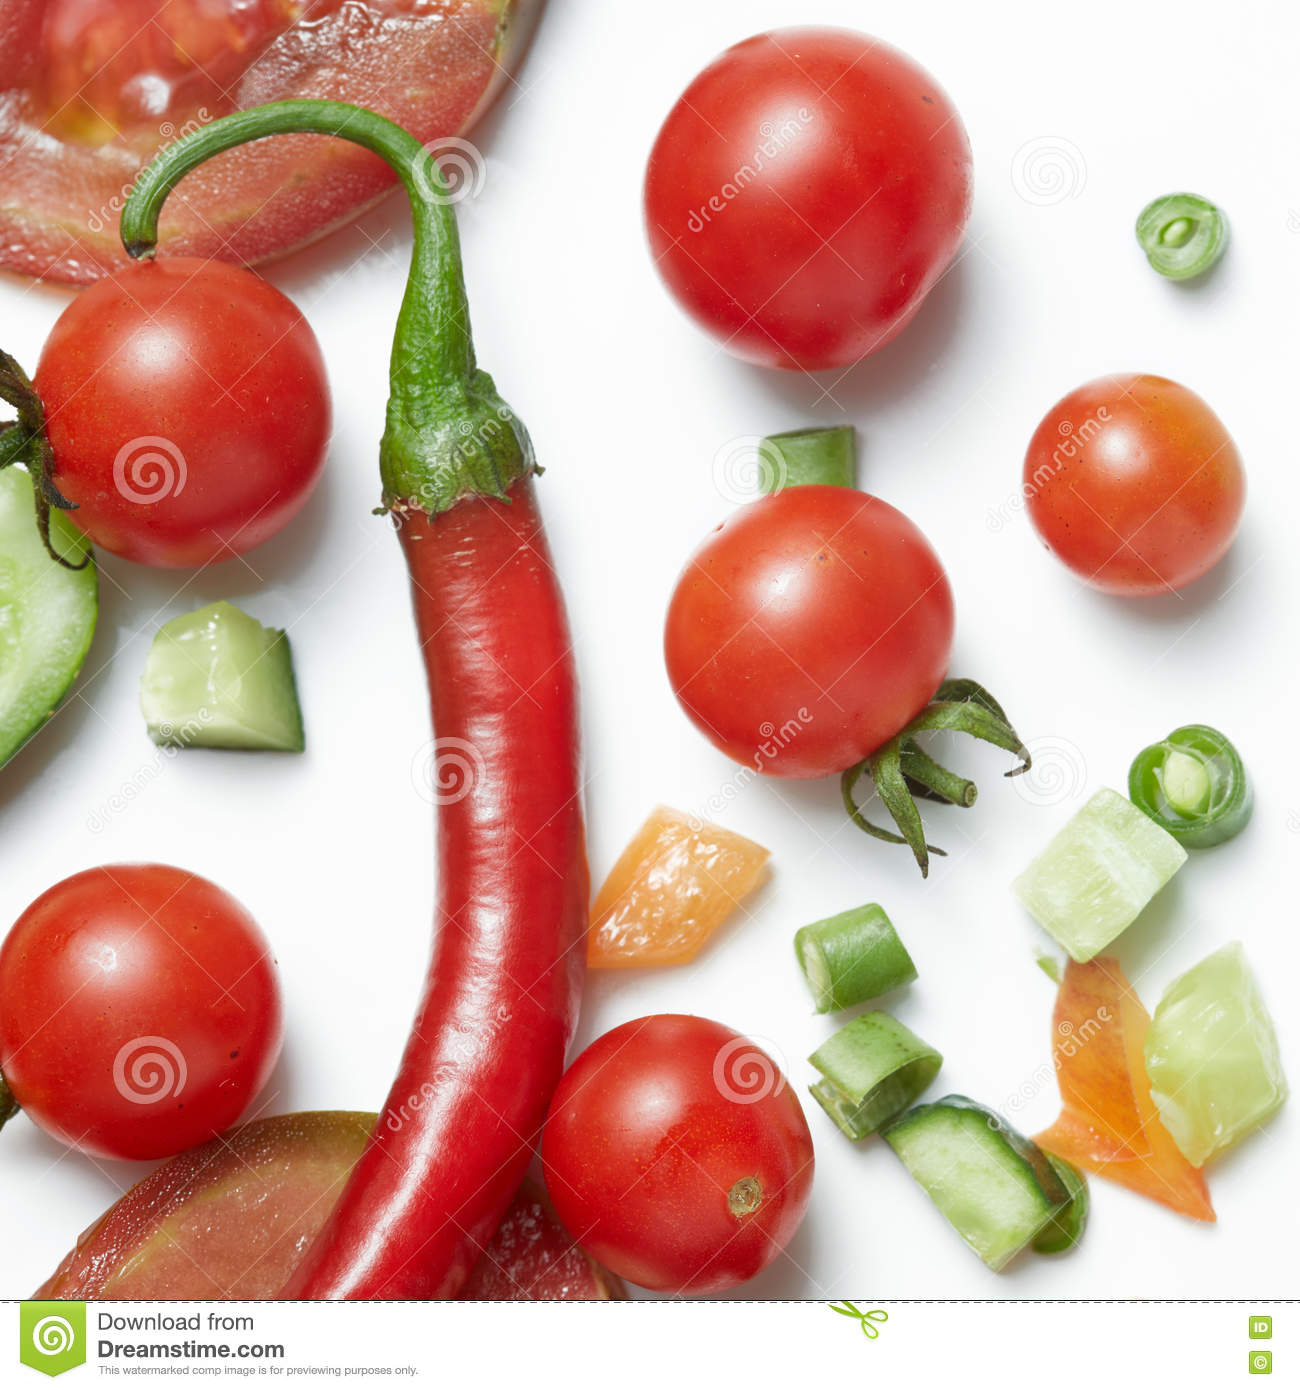 Tomato and red hot chili peppers